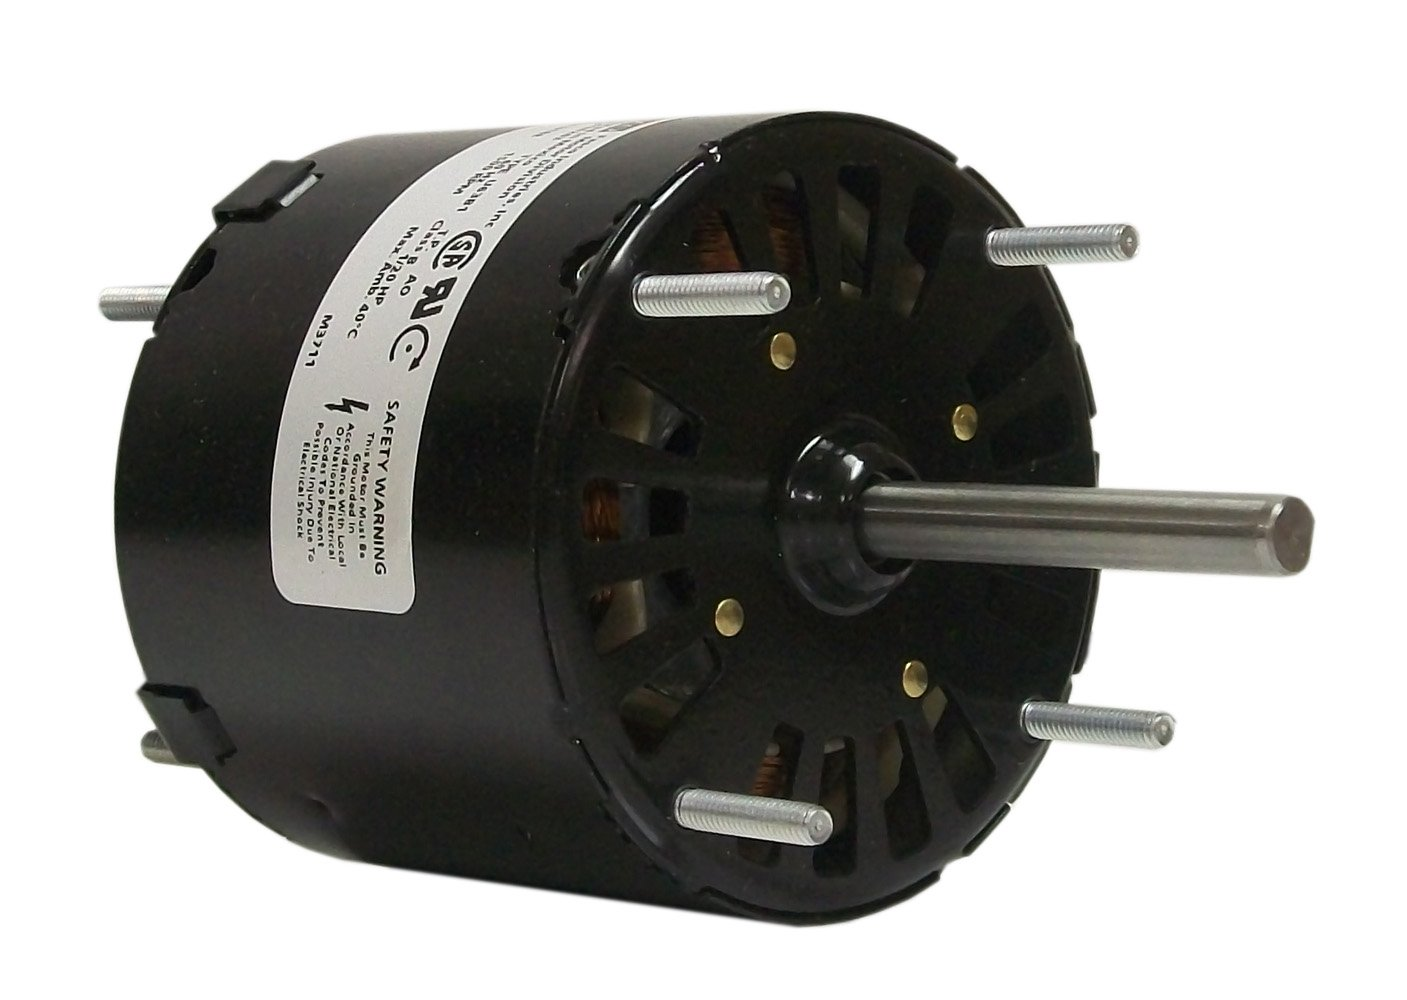 Fasco D188 3.3-Inch General Purpose Motor, 1/20 HP, 230 Volts, 1500 RPM, 1 Speed.9 Amps, OAO Enclosure, CWSE Rotation, Sleeve Bearing